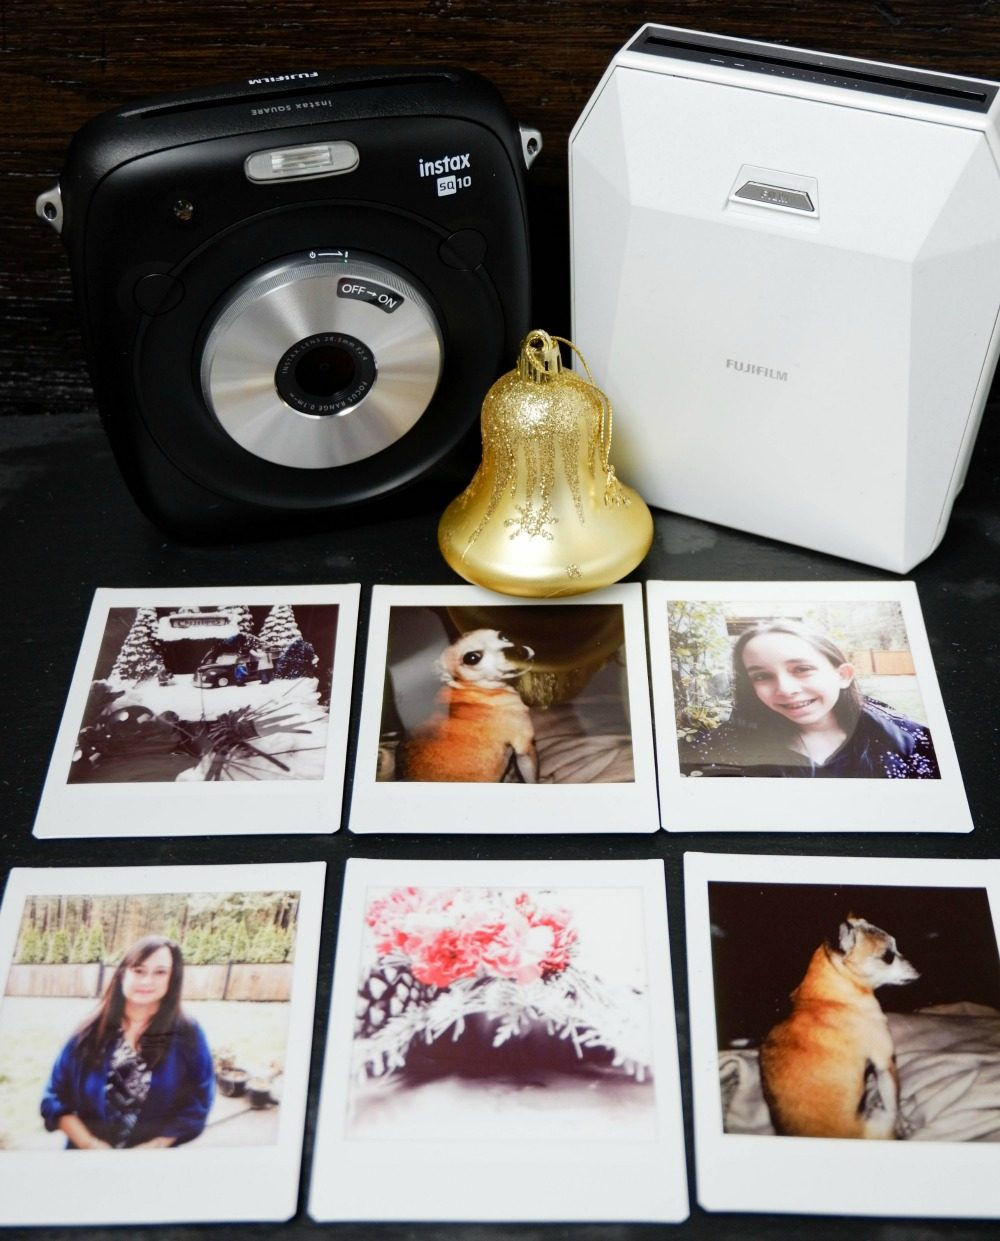 Instax Square and SP-3